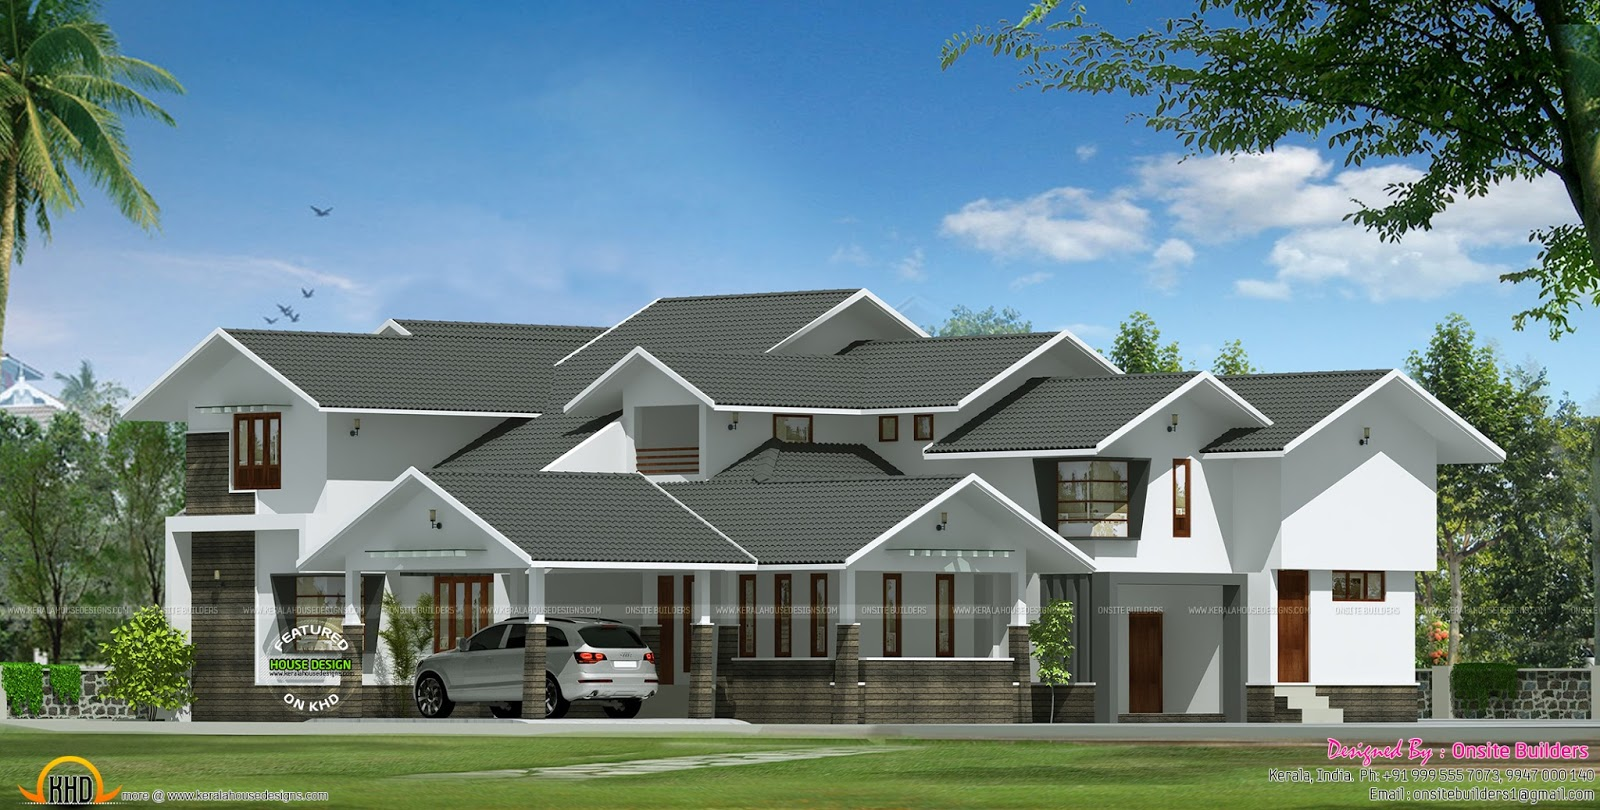 Luxury sloped roof house kerala home design and floor plans for Executive home plans designs